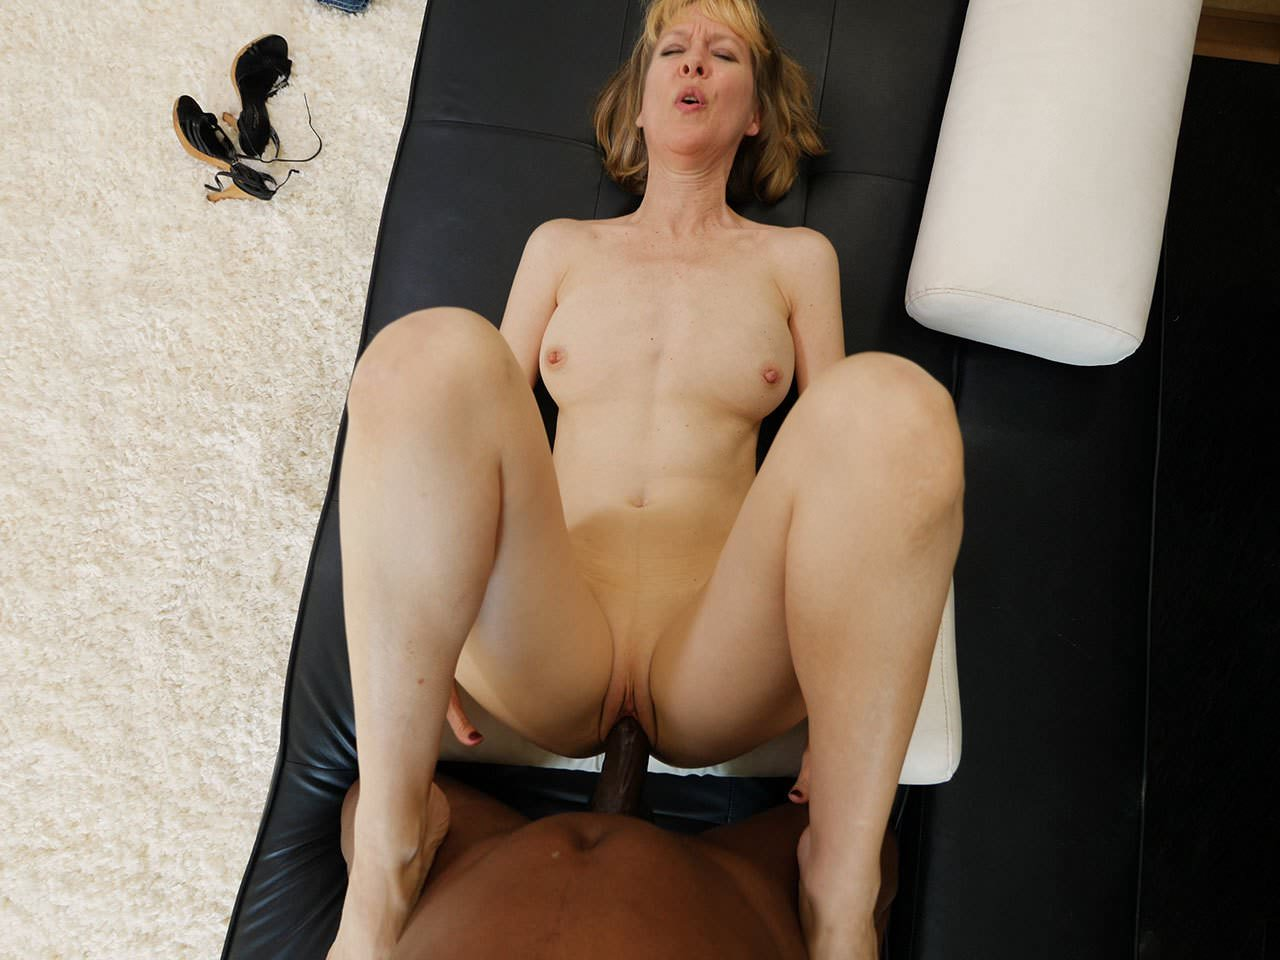 Mature Milf Fucks Young Black Guy, Free Porn 6C Xhamster-4294